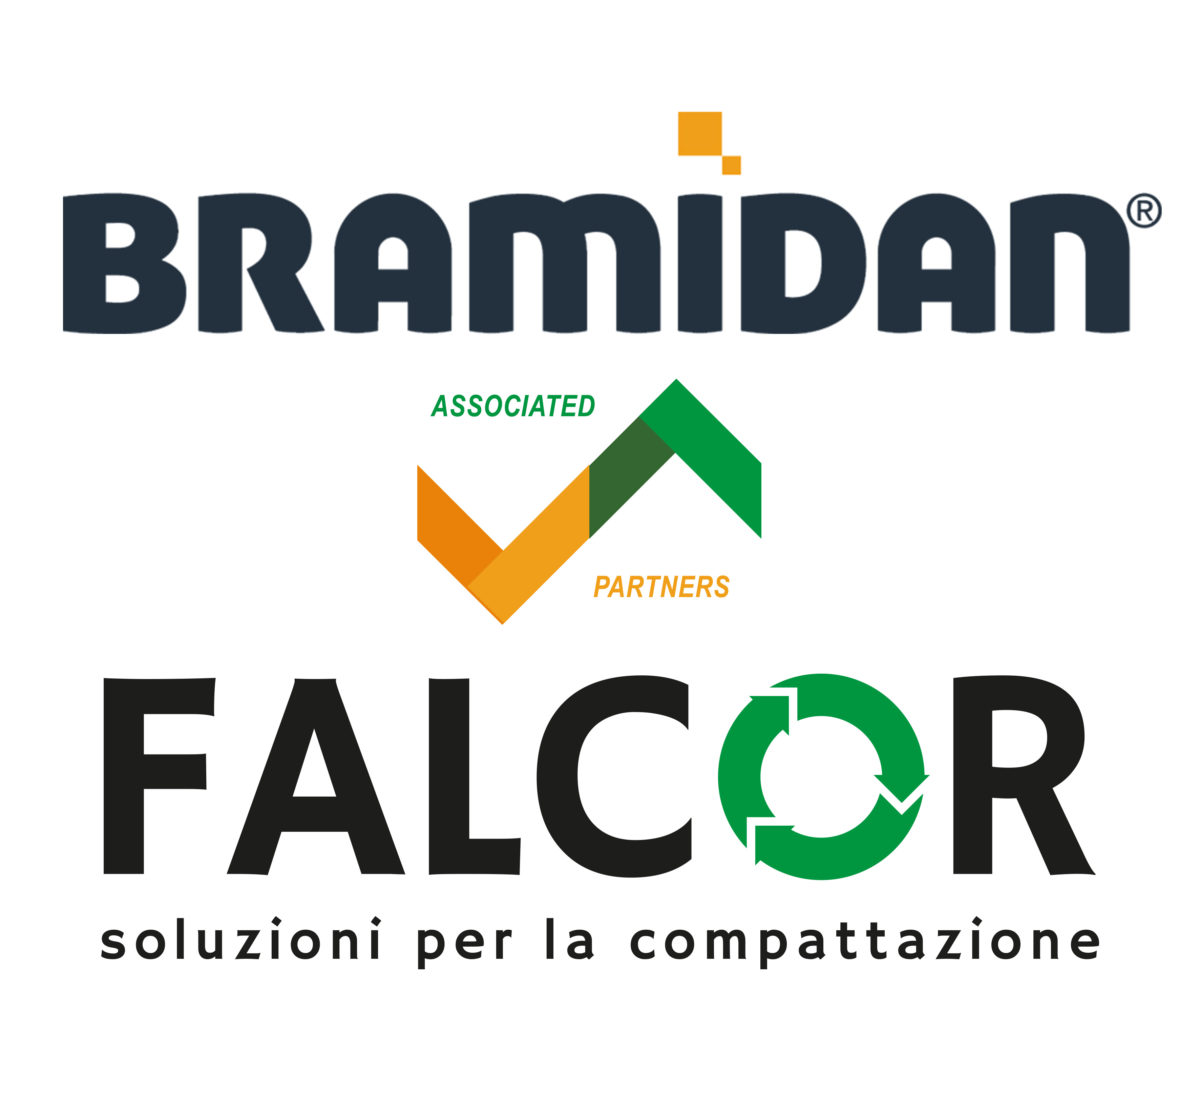 Bramidan-Falcor_Italian Associate Partner